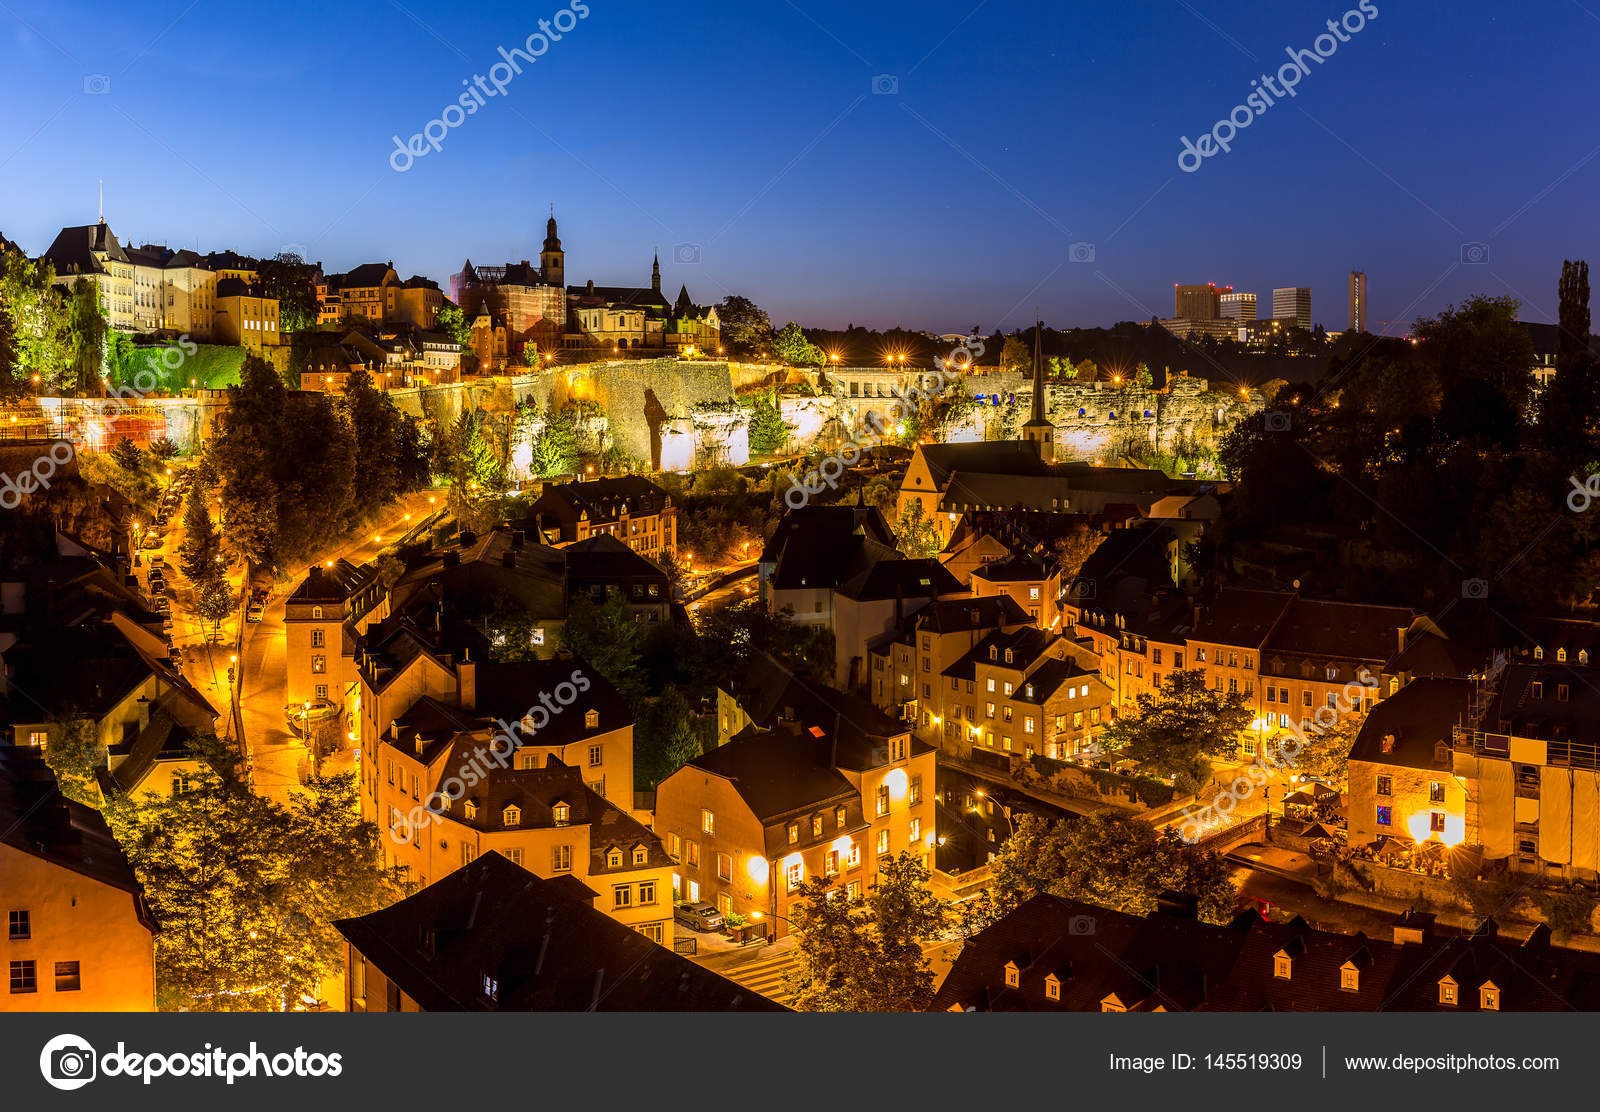 Luxembourg city at night stock photo vichie81 145519309 luxembourg city at night stock photo altavistaventures Choice Image